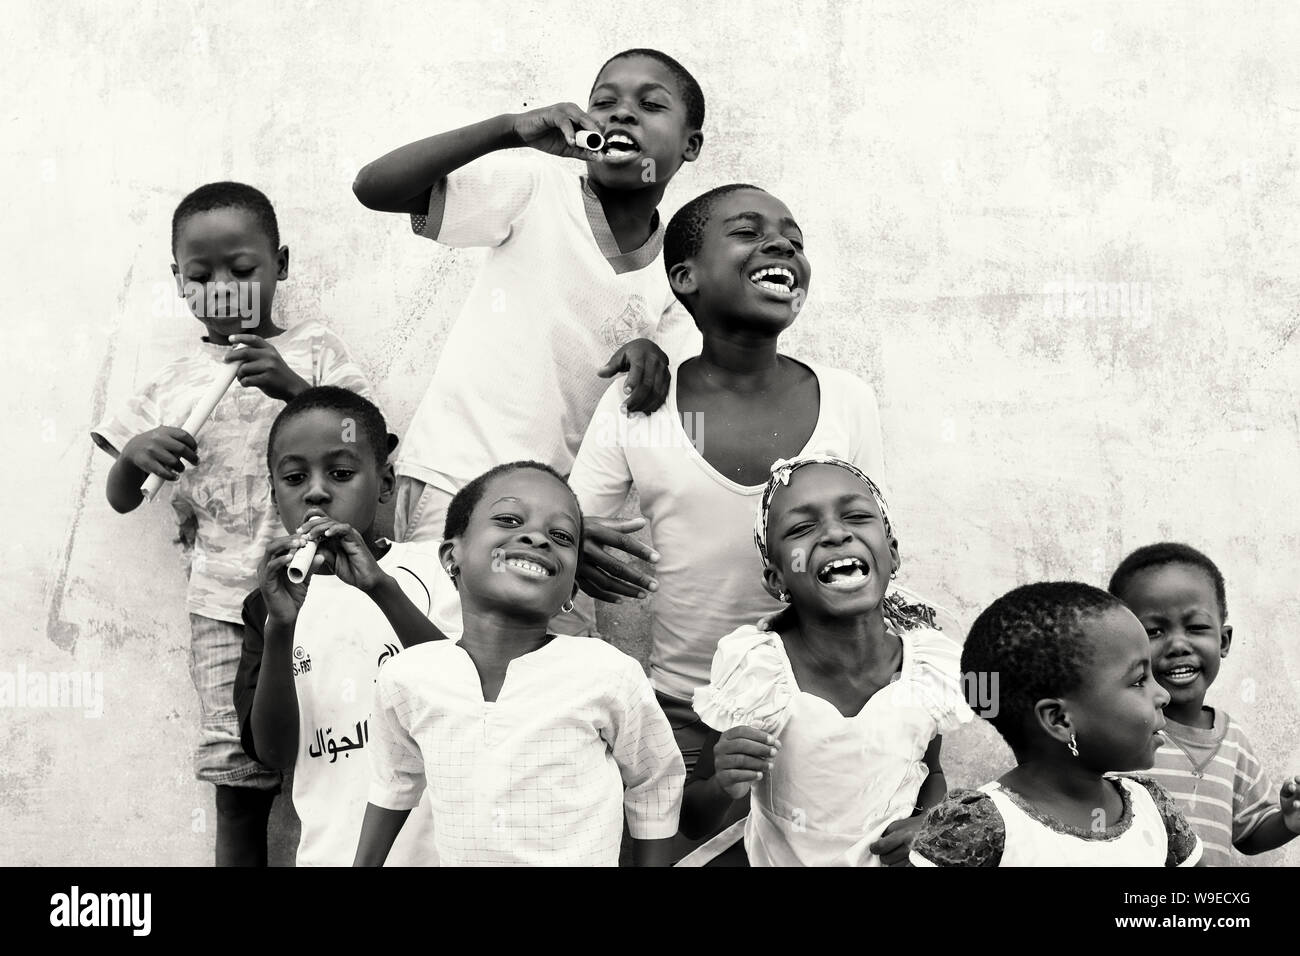 Fante People Stock Photos & Fante People Stock Images - Alamy